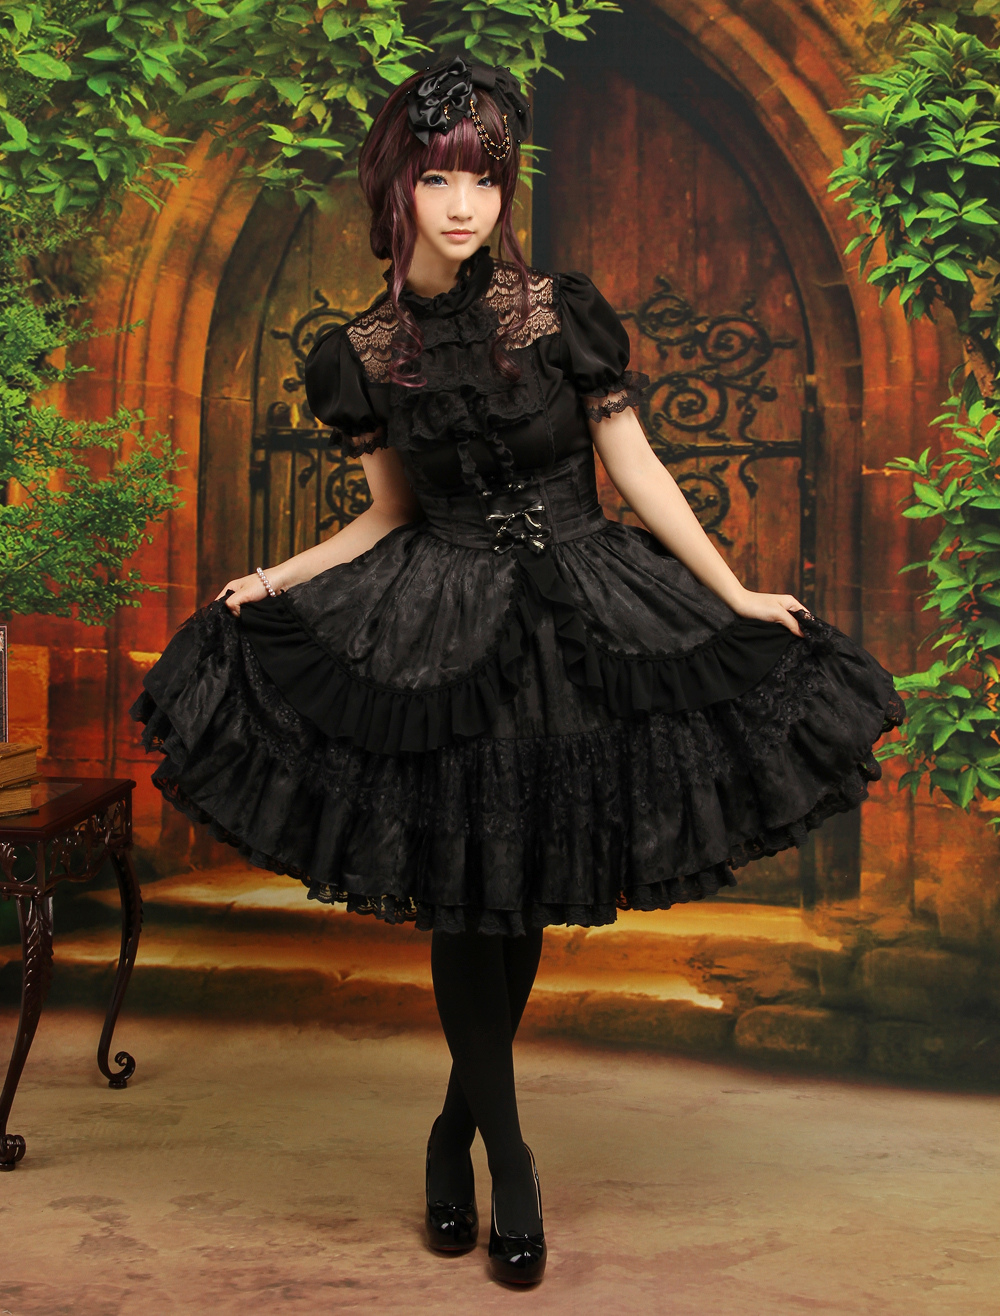 Buy Gothic Lolita Outfit Black 2 Piece Set Lace Ruffle High Waist Skirt With Blouse for $100.79 in Milanoo store